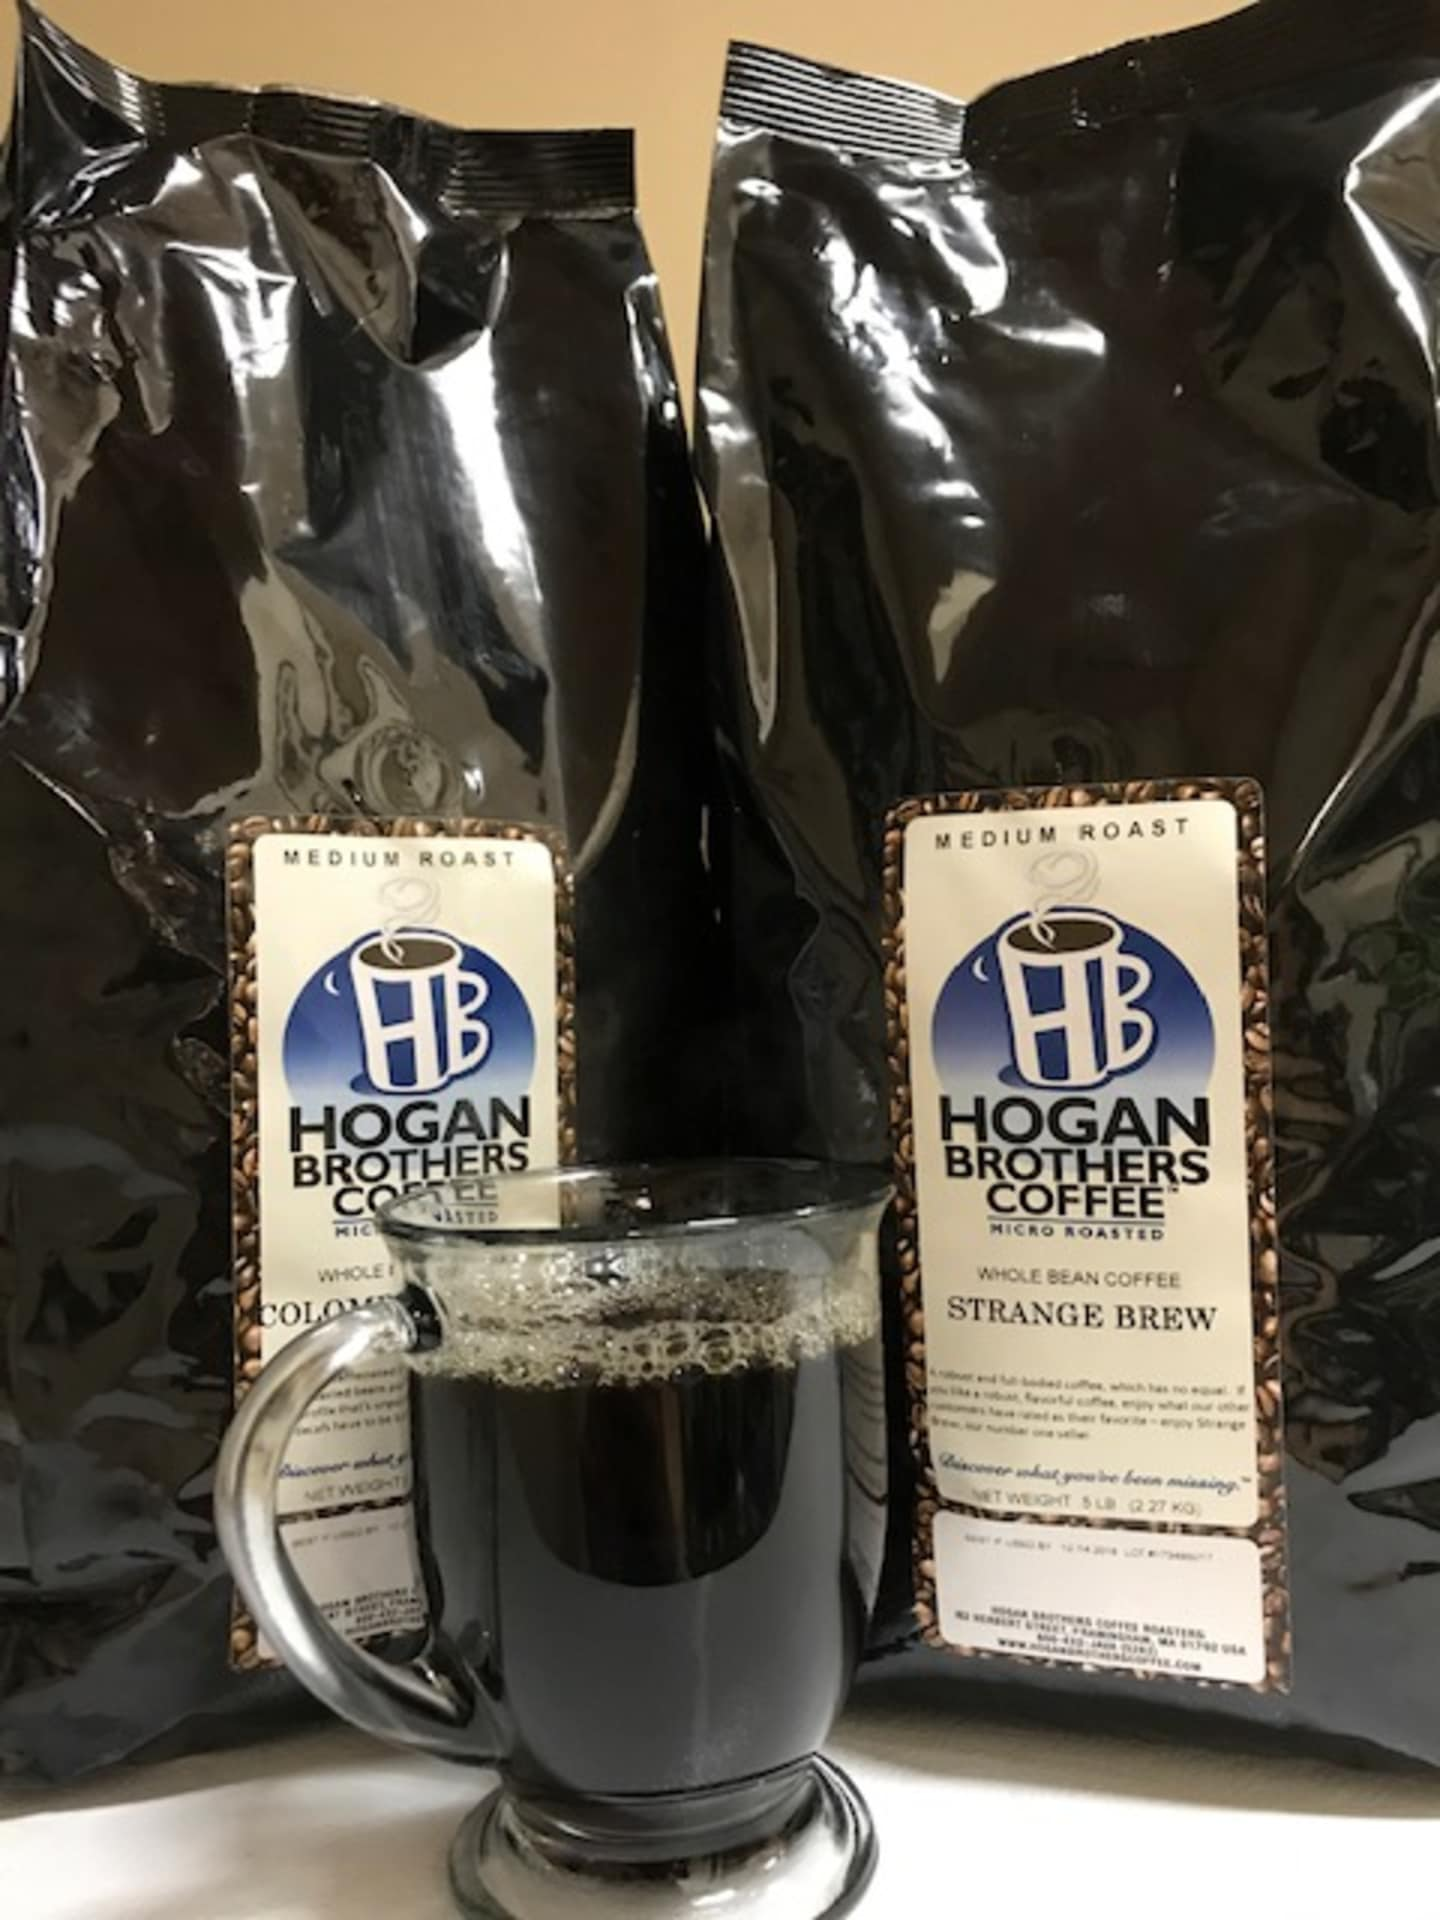 Hogan Brothers Fresh Roasted Coffee